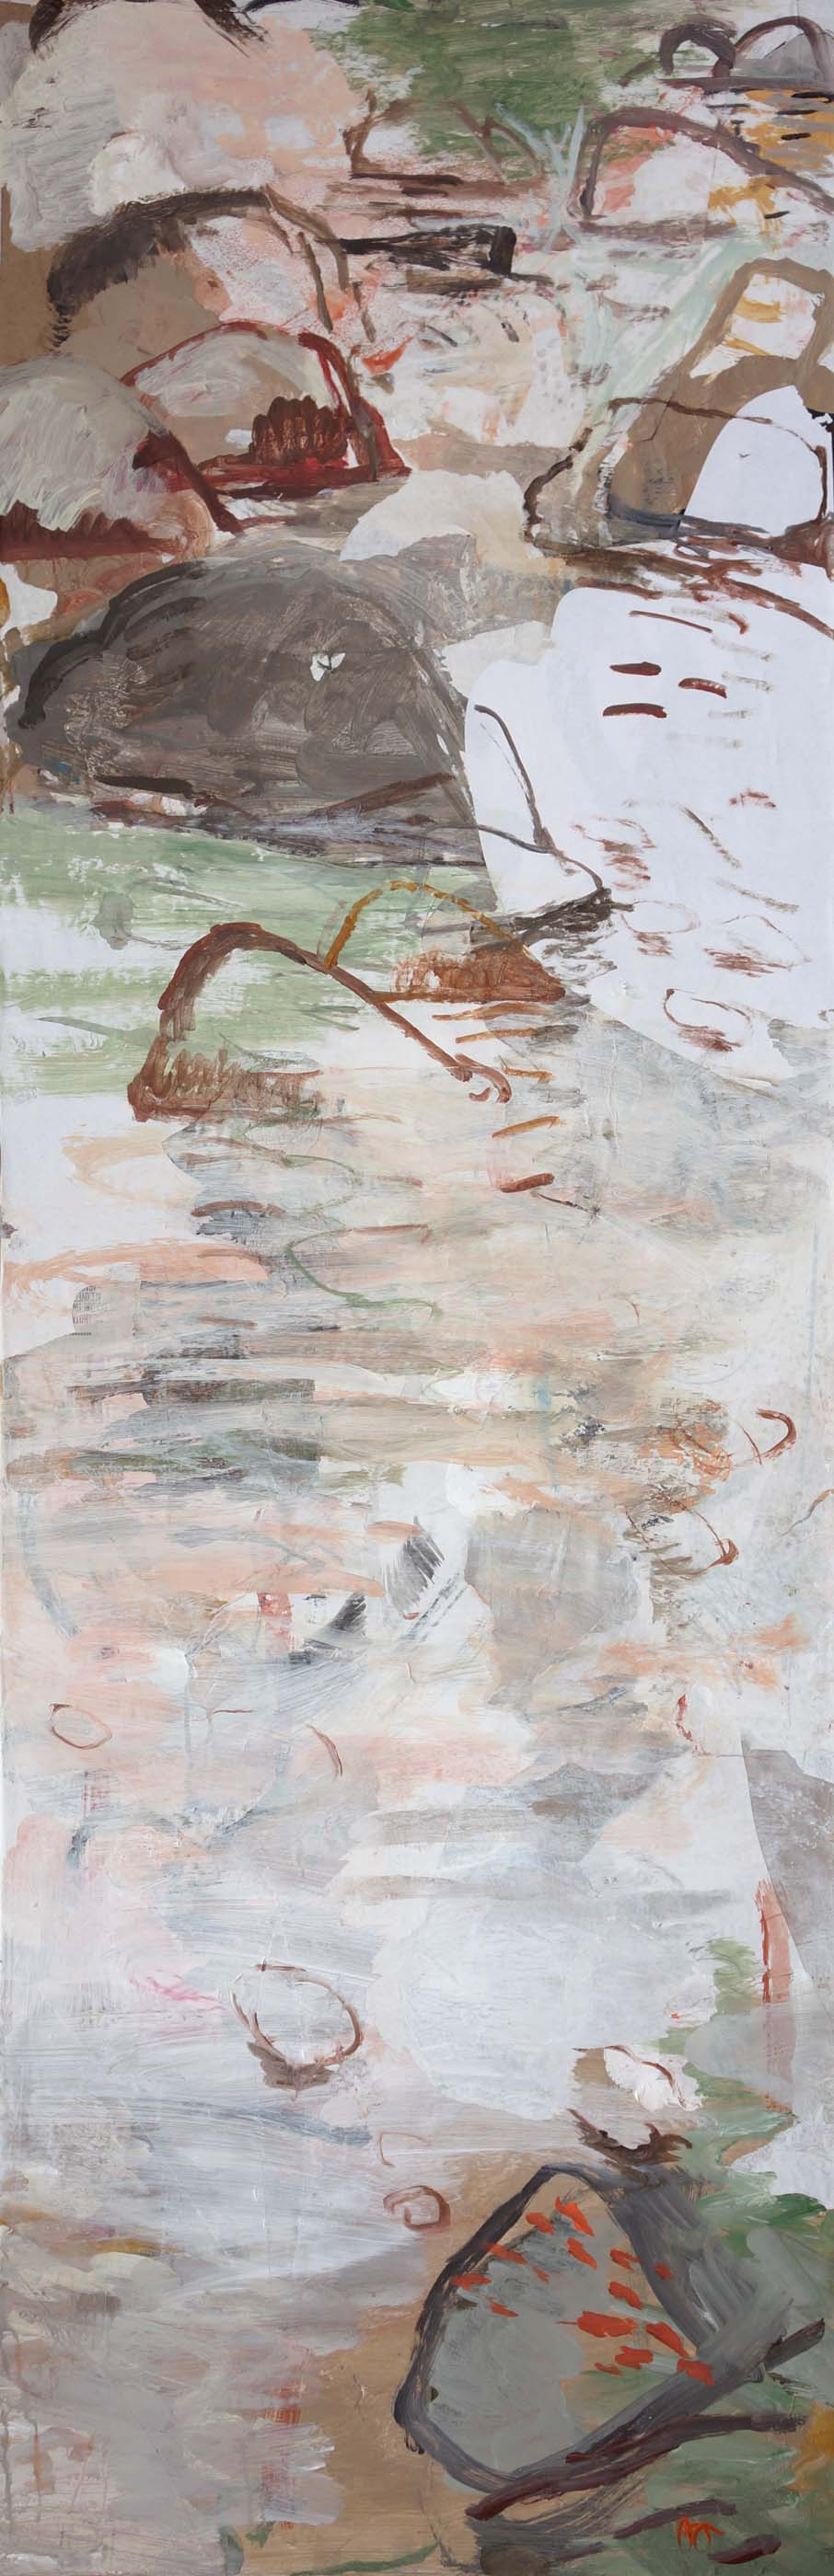 """autumn creek 78x25.5""""  january 10 state  2013 acrylic & collaged paper on canvas"""